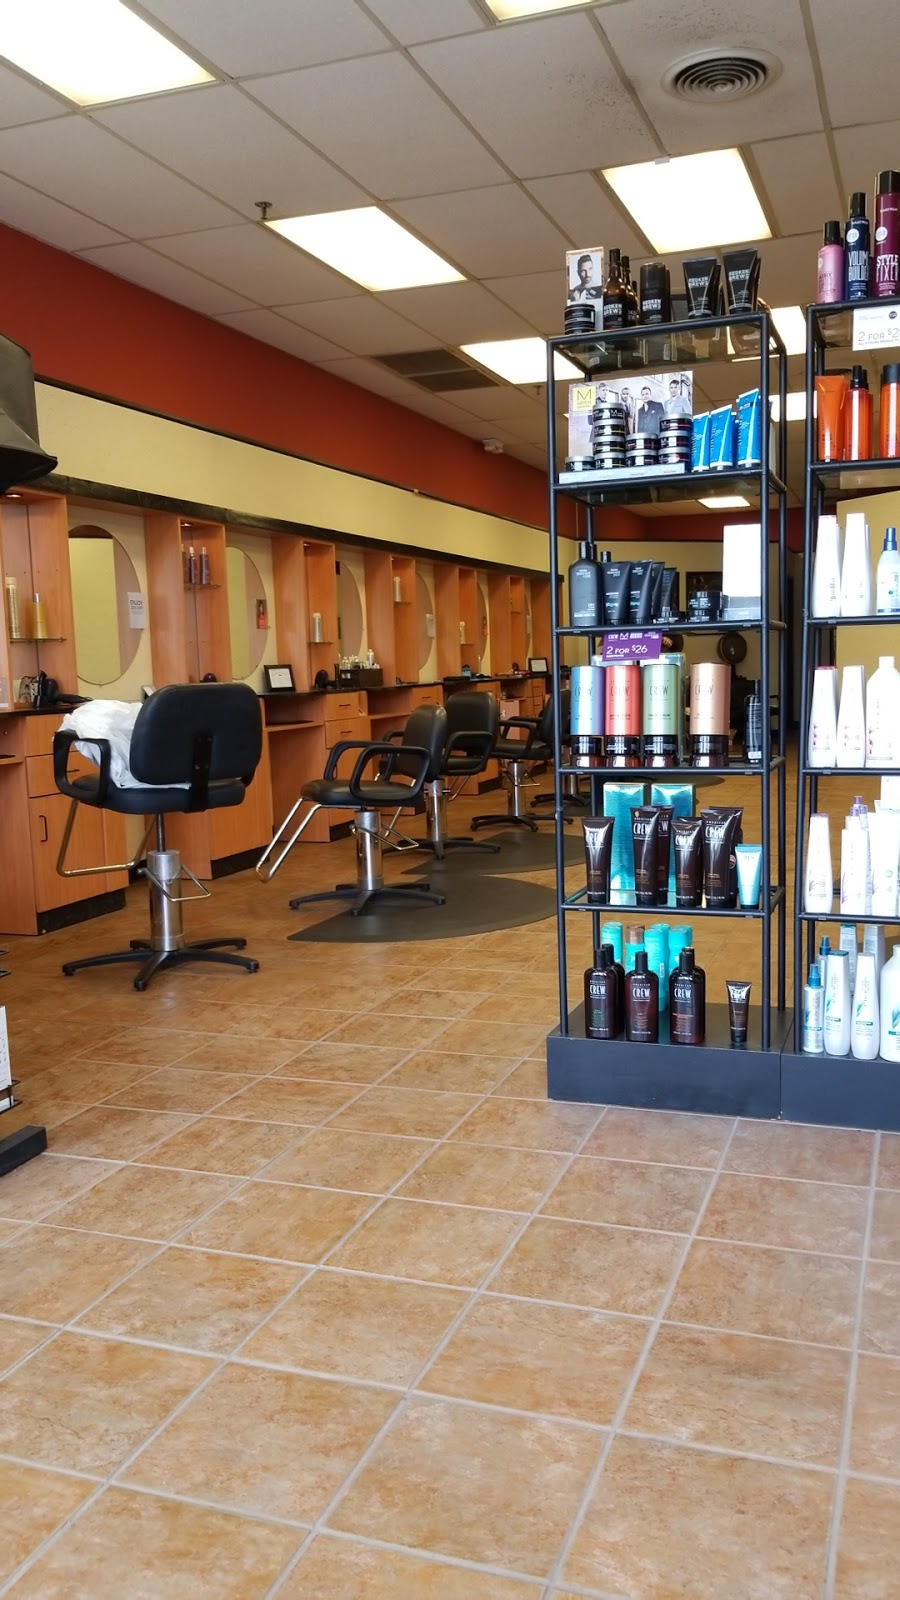 Fiesta Salons - hair care  | Photo 1 of 6 | Address: 1936 E Commercial Ave, Lowell, IN 46356, USA | Phone: (219) 696-8609